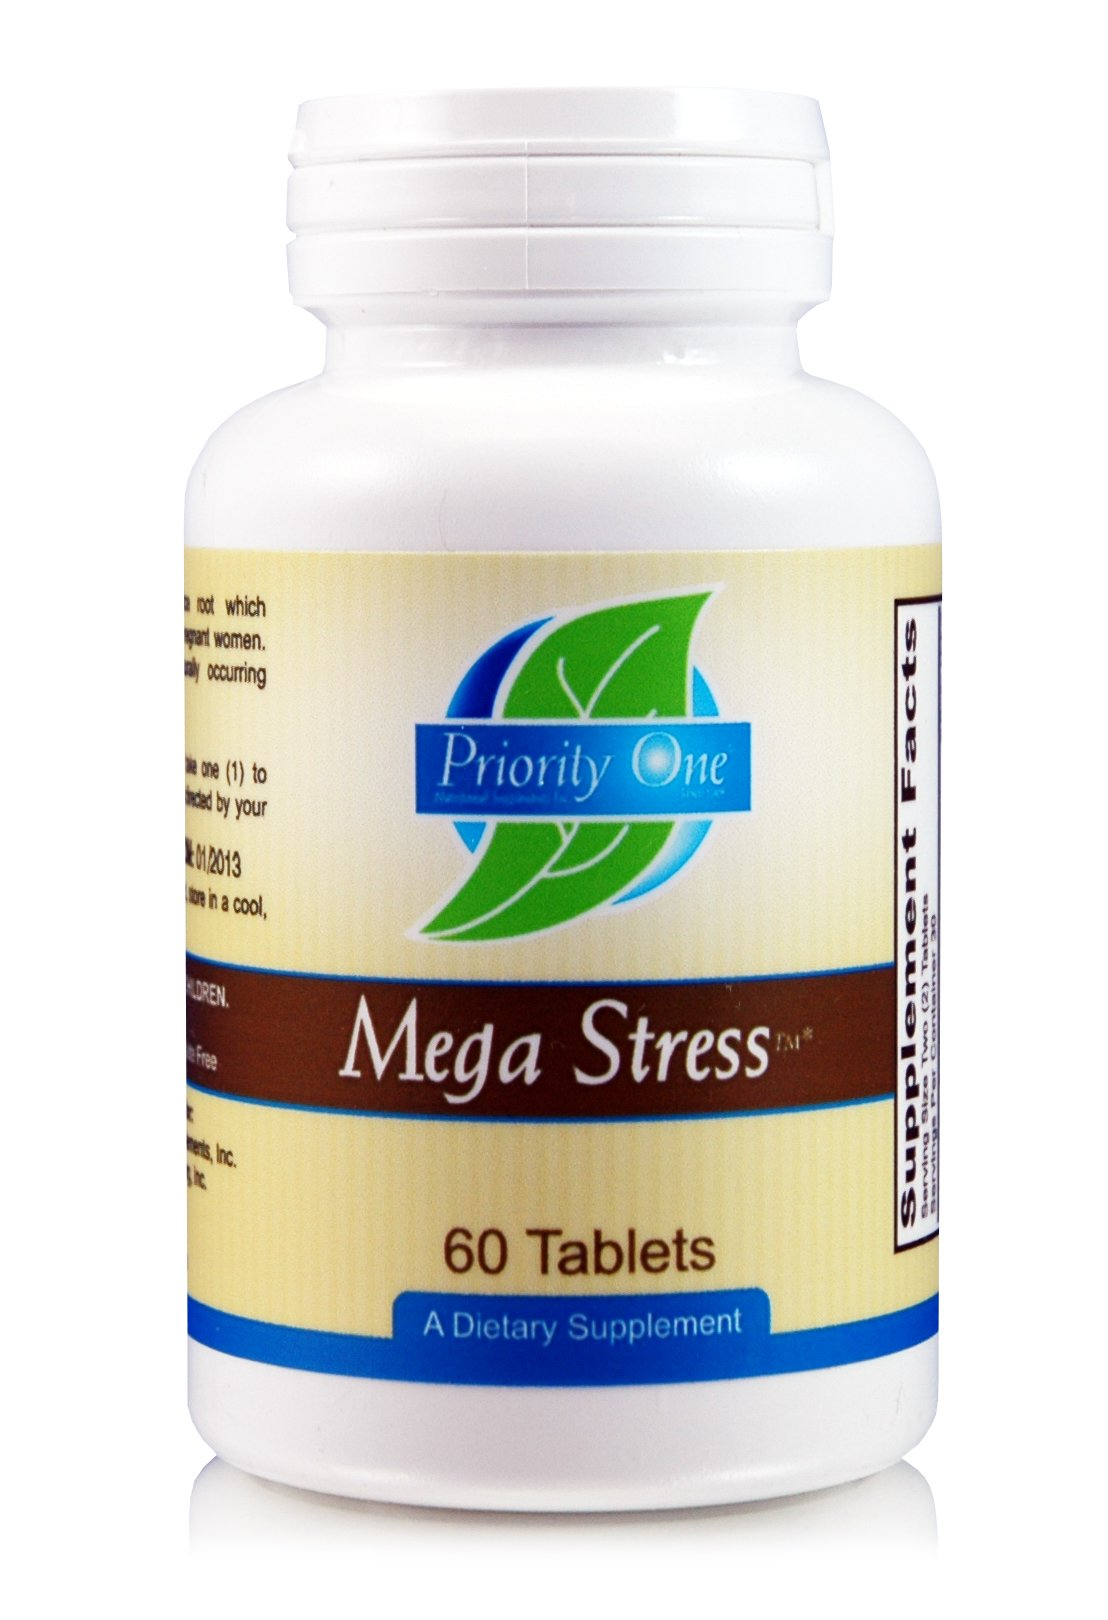 Priority One Vitamins Mega Stress 60 Tablets - High Potency B Vitamin Complex with The Benefits of Adrenal - Healthy Energy Production.*